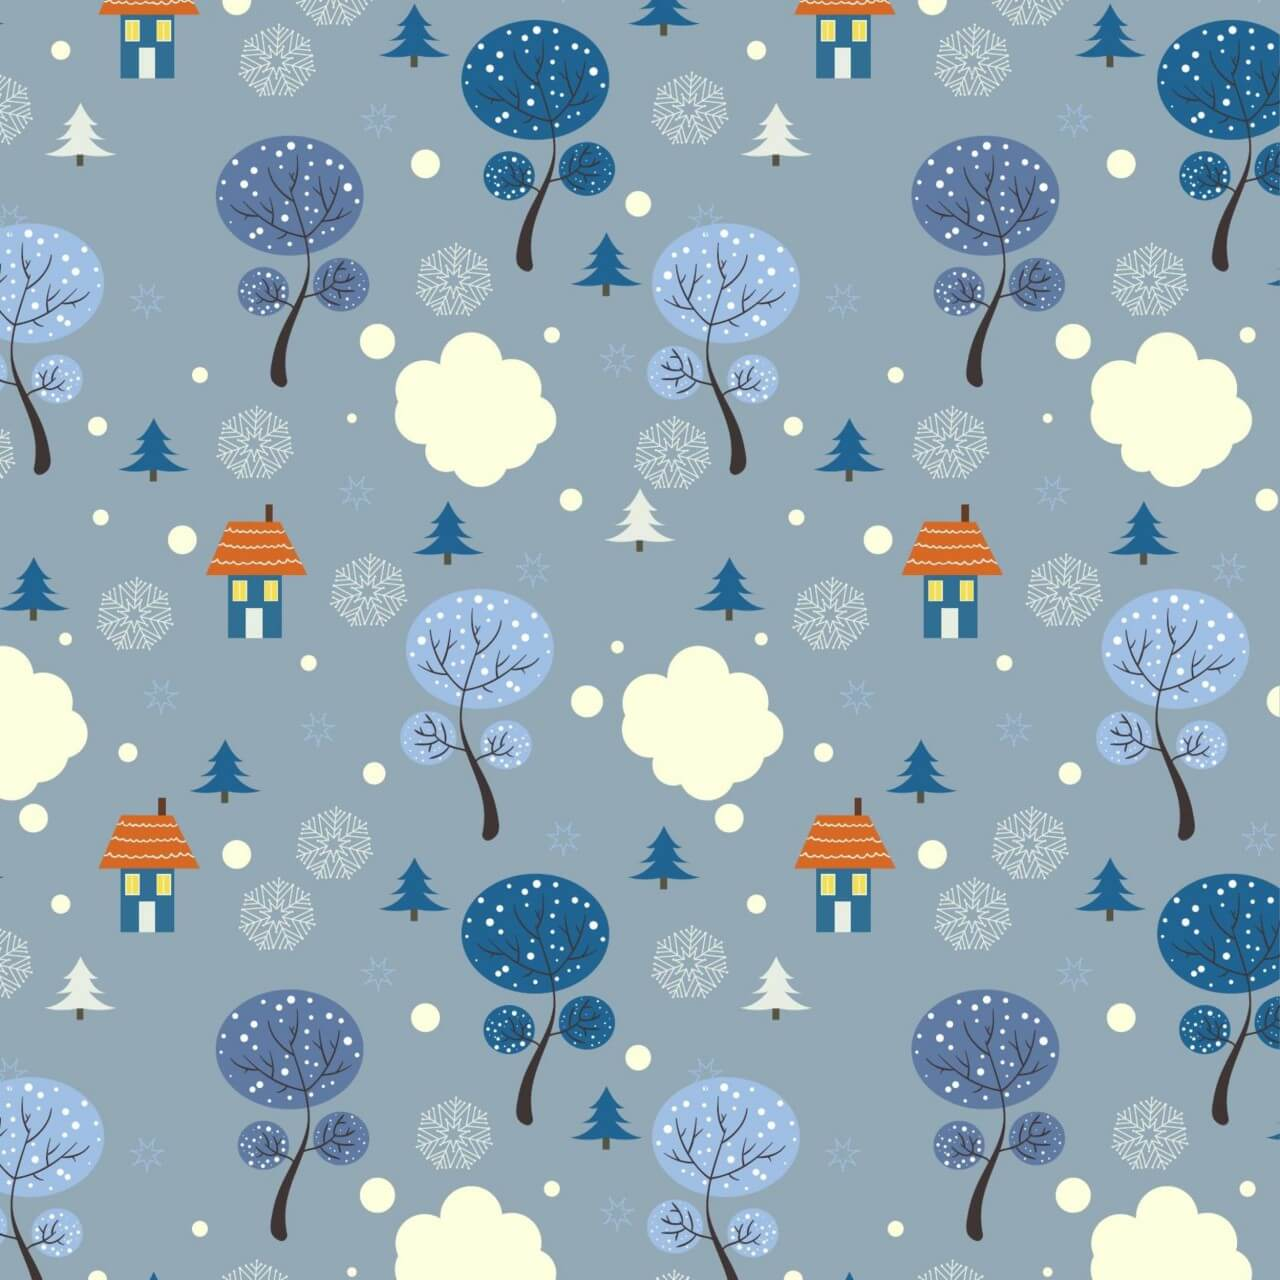 """Free vector """"Christmas pattern with trees and houses"""""""